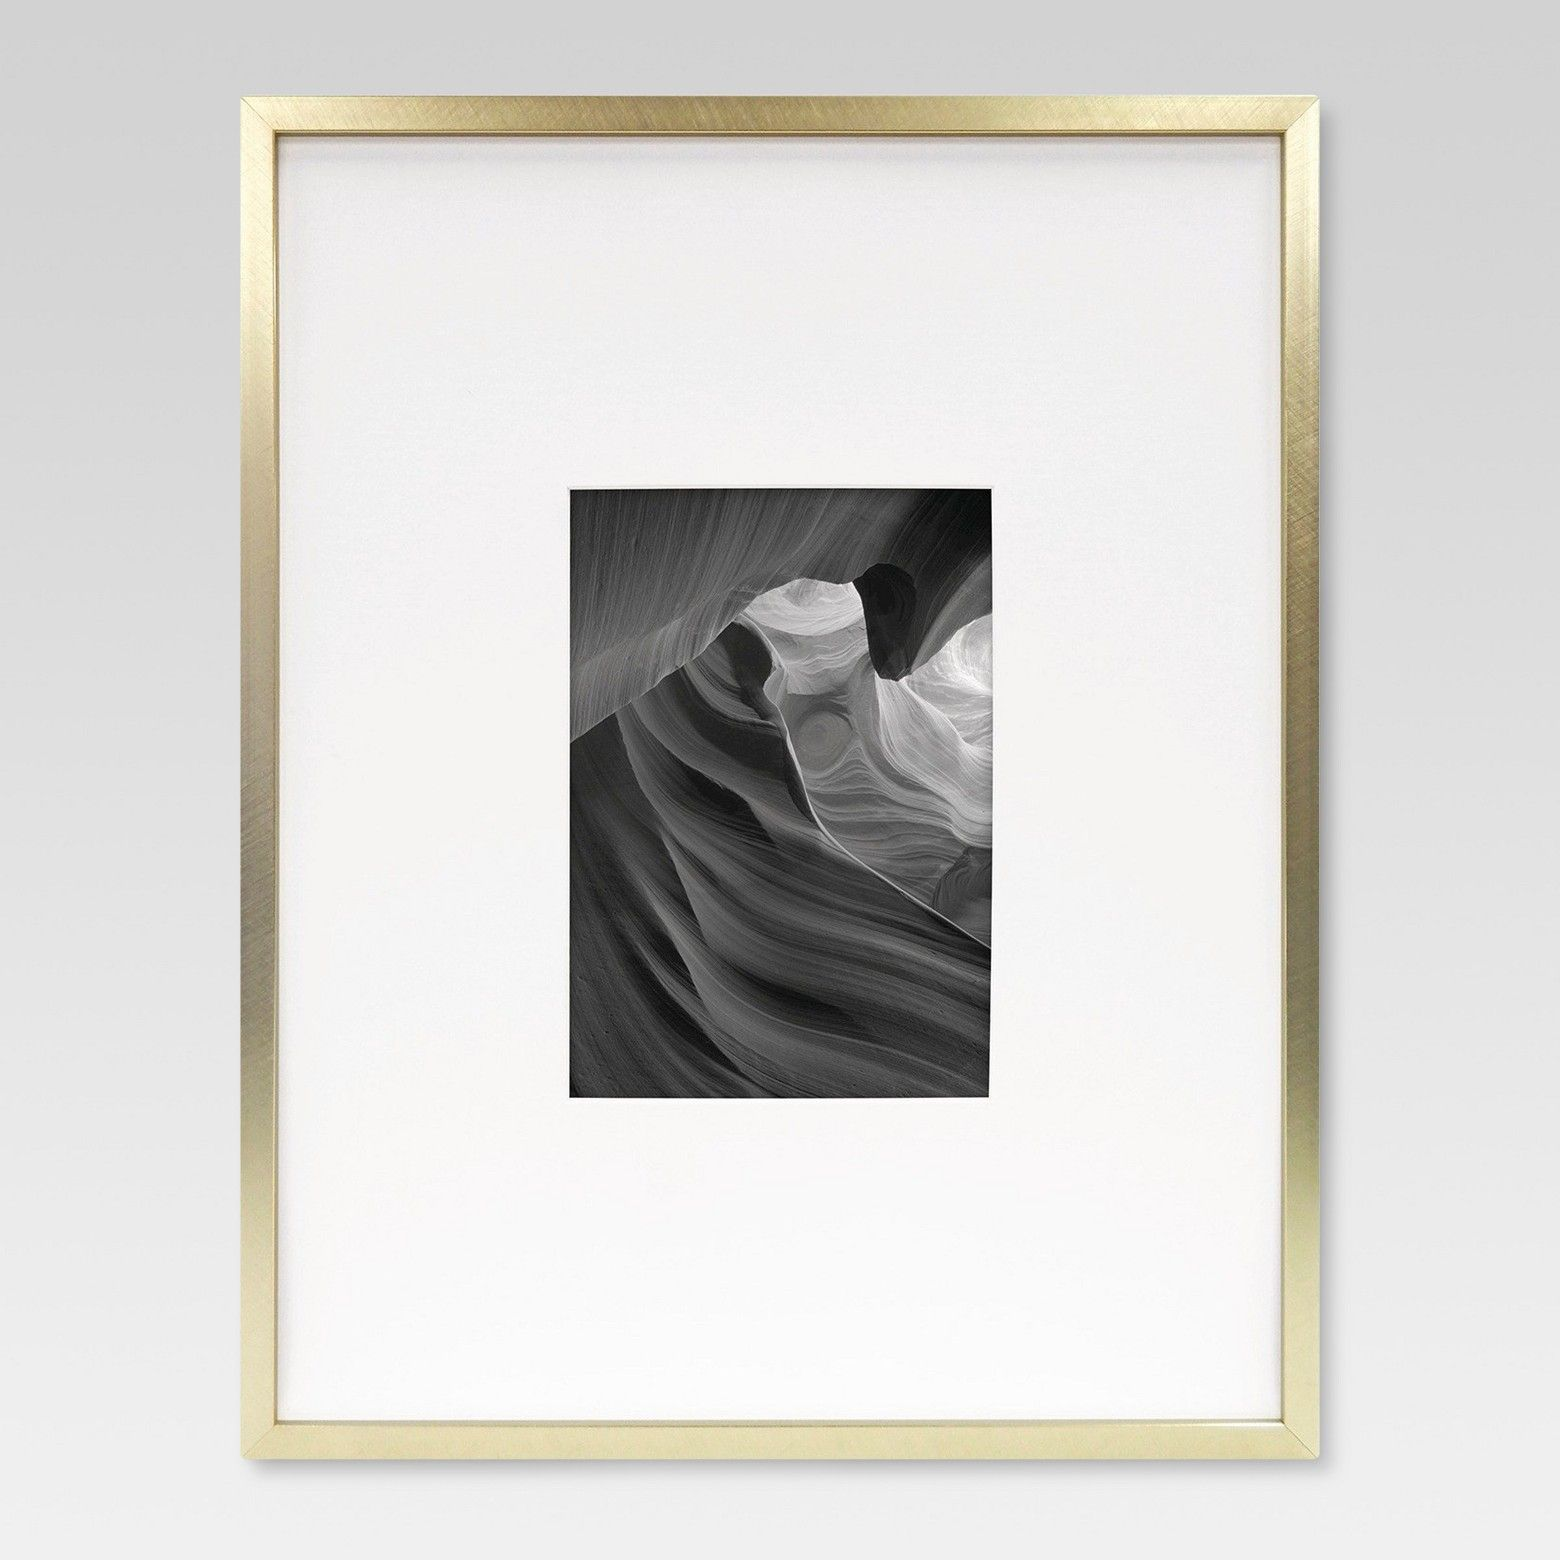 Thin Metal Matted Gallery Frame Gold Project 62 Frames On Wall Photo Room Metal Photo Frames